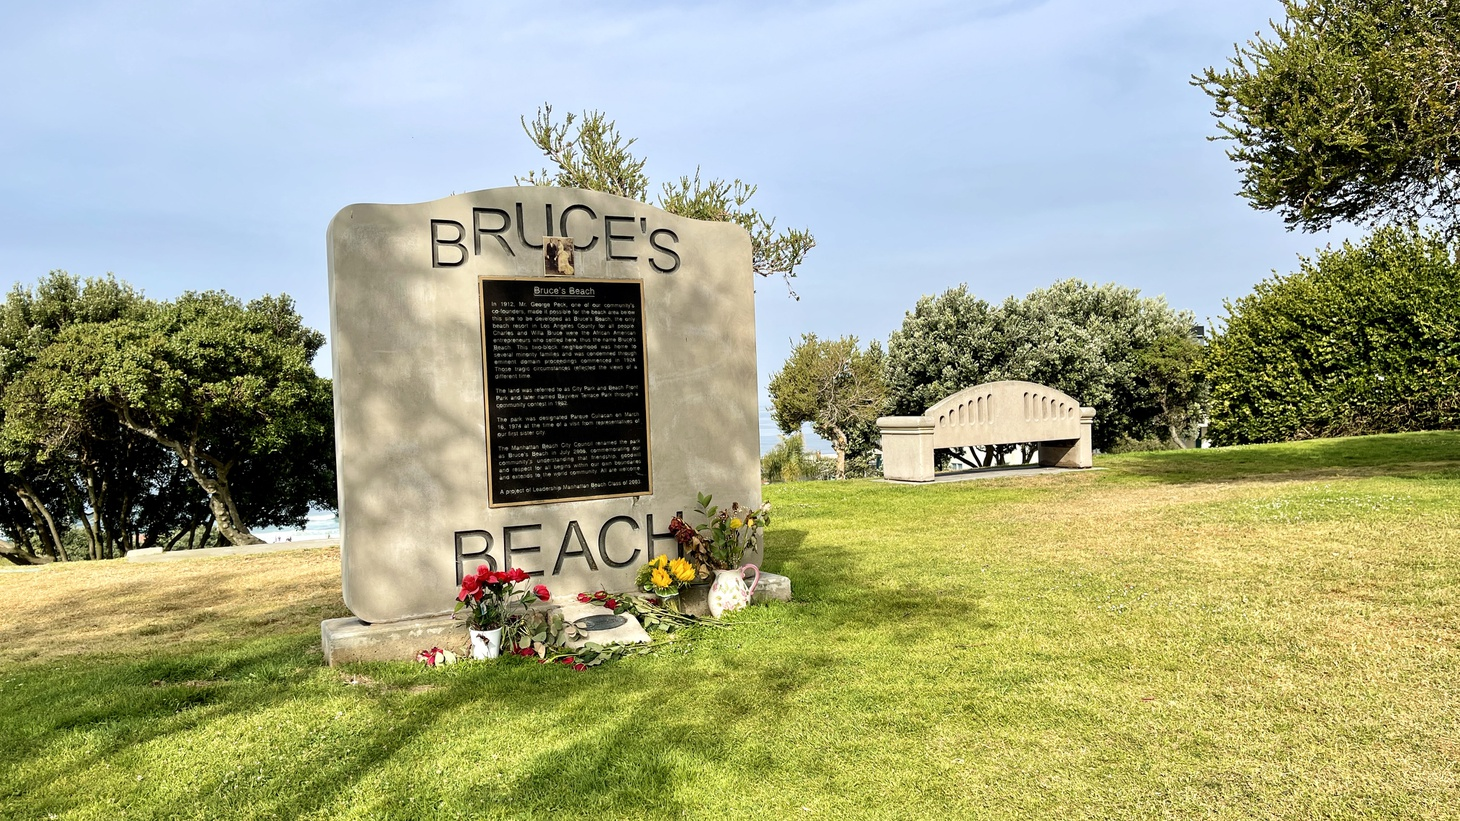 Charles and Willa Bruce bought a beachfront plot of land for about $1,000 in 1912. They built a welcoming resort catering to Black people. But by 1924, Manhattan Beach condemned and seized the land, using eminent domain to turn the area into a park.